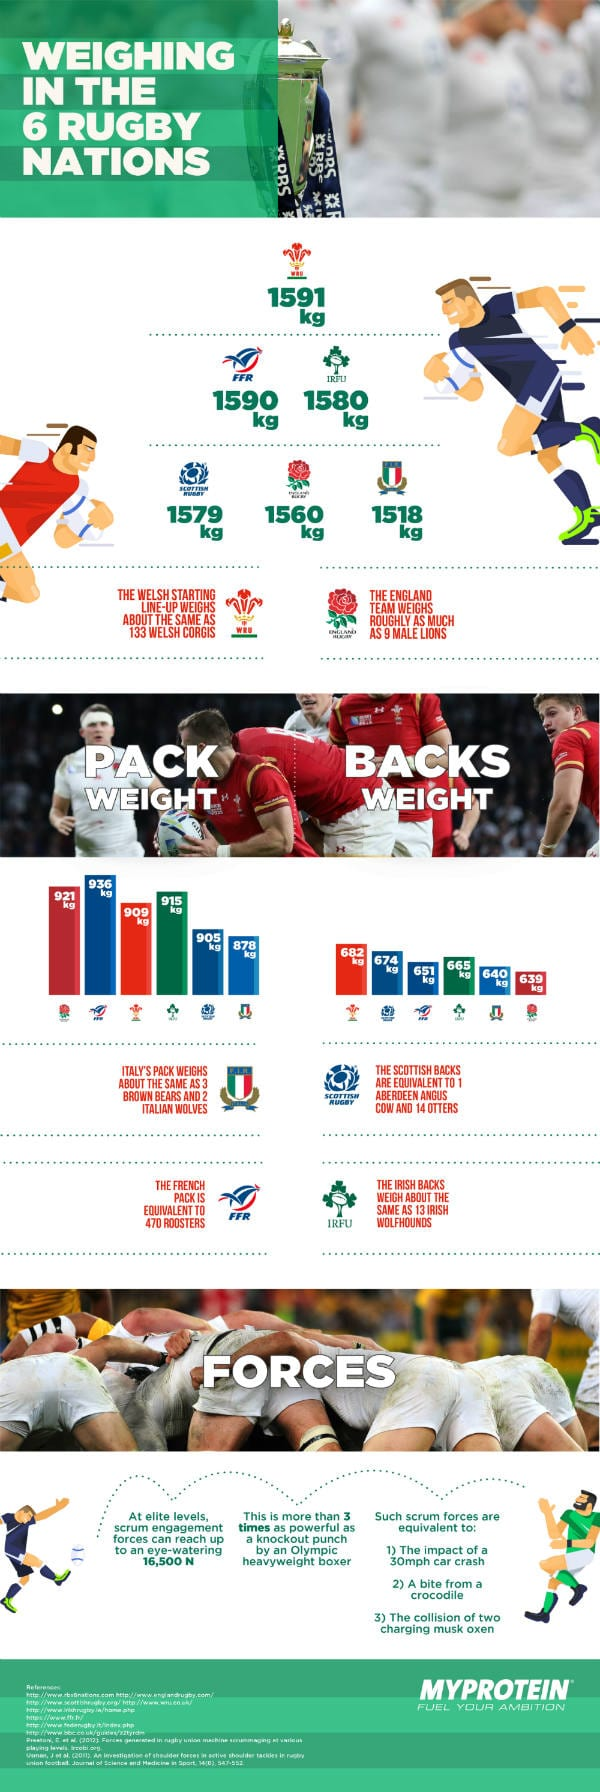 6 Nations compact